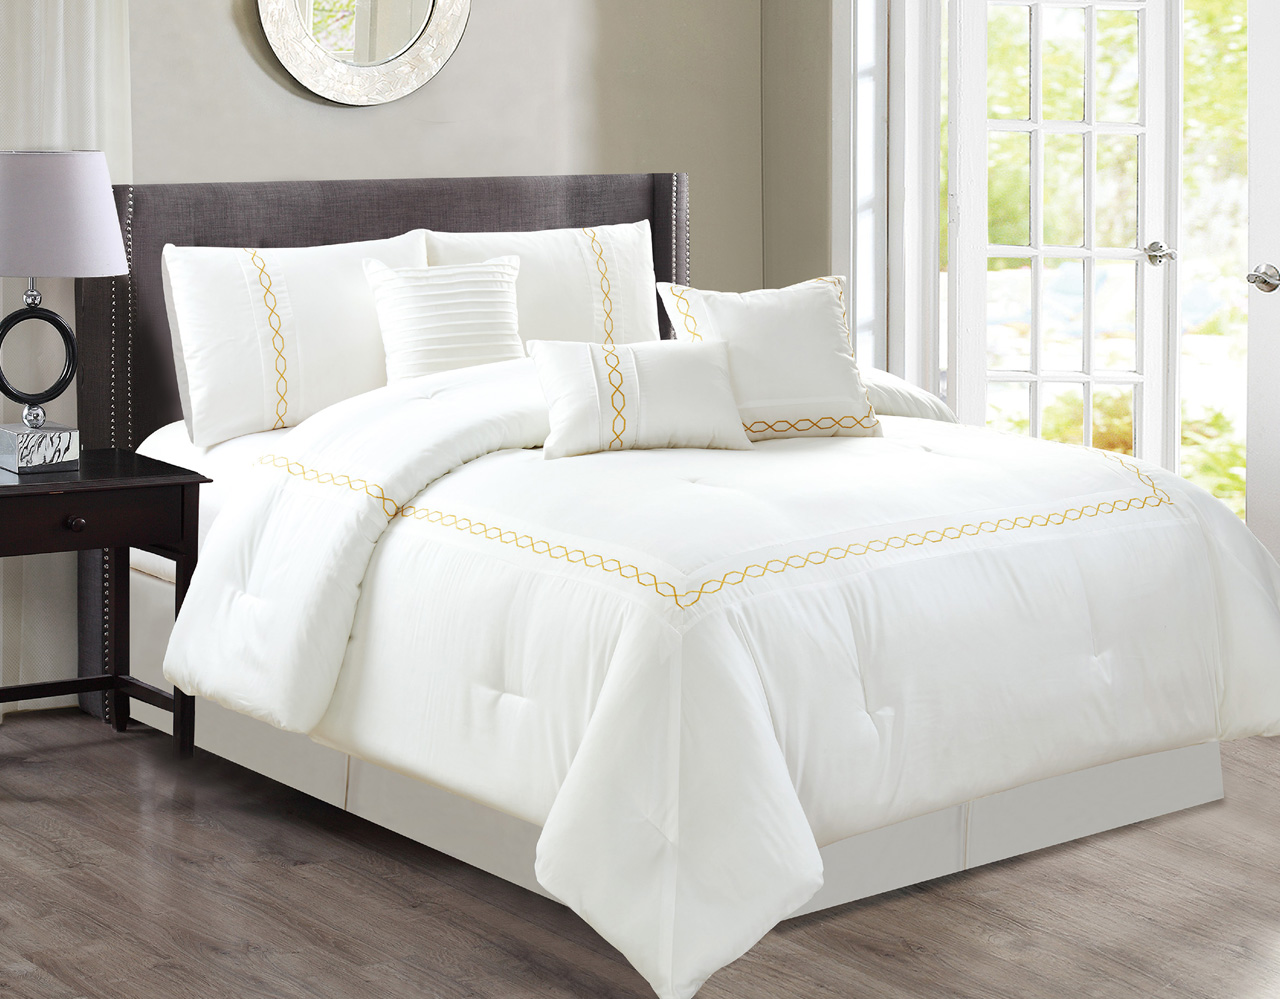 white lavender sets xl comforter sheets and bedspreads twin set